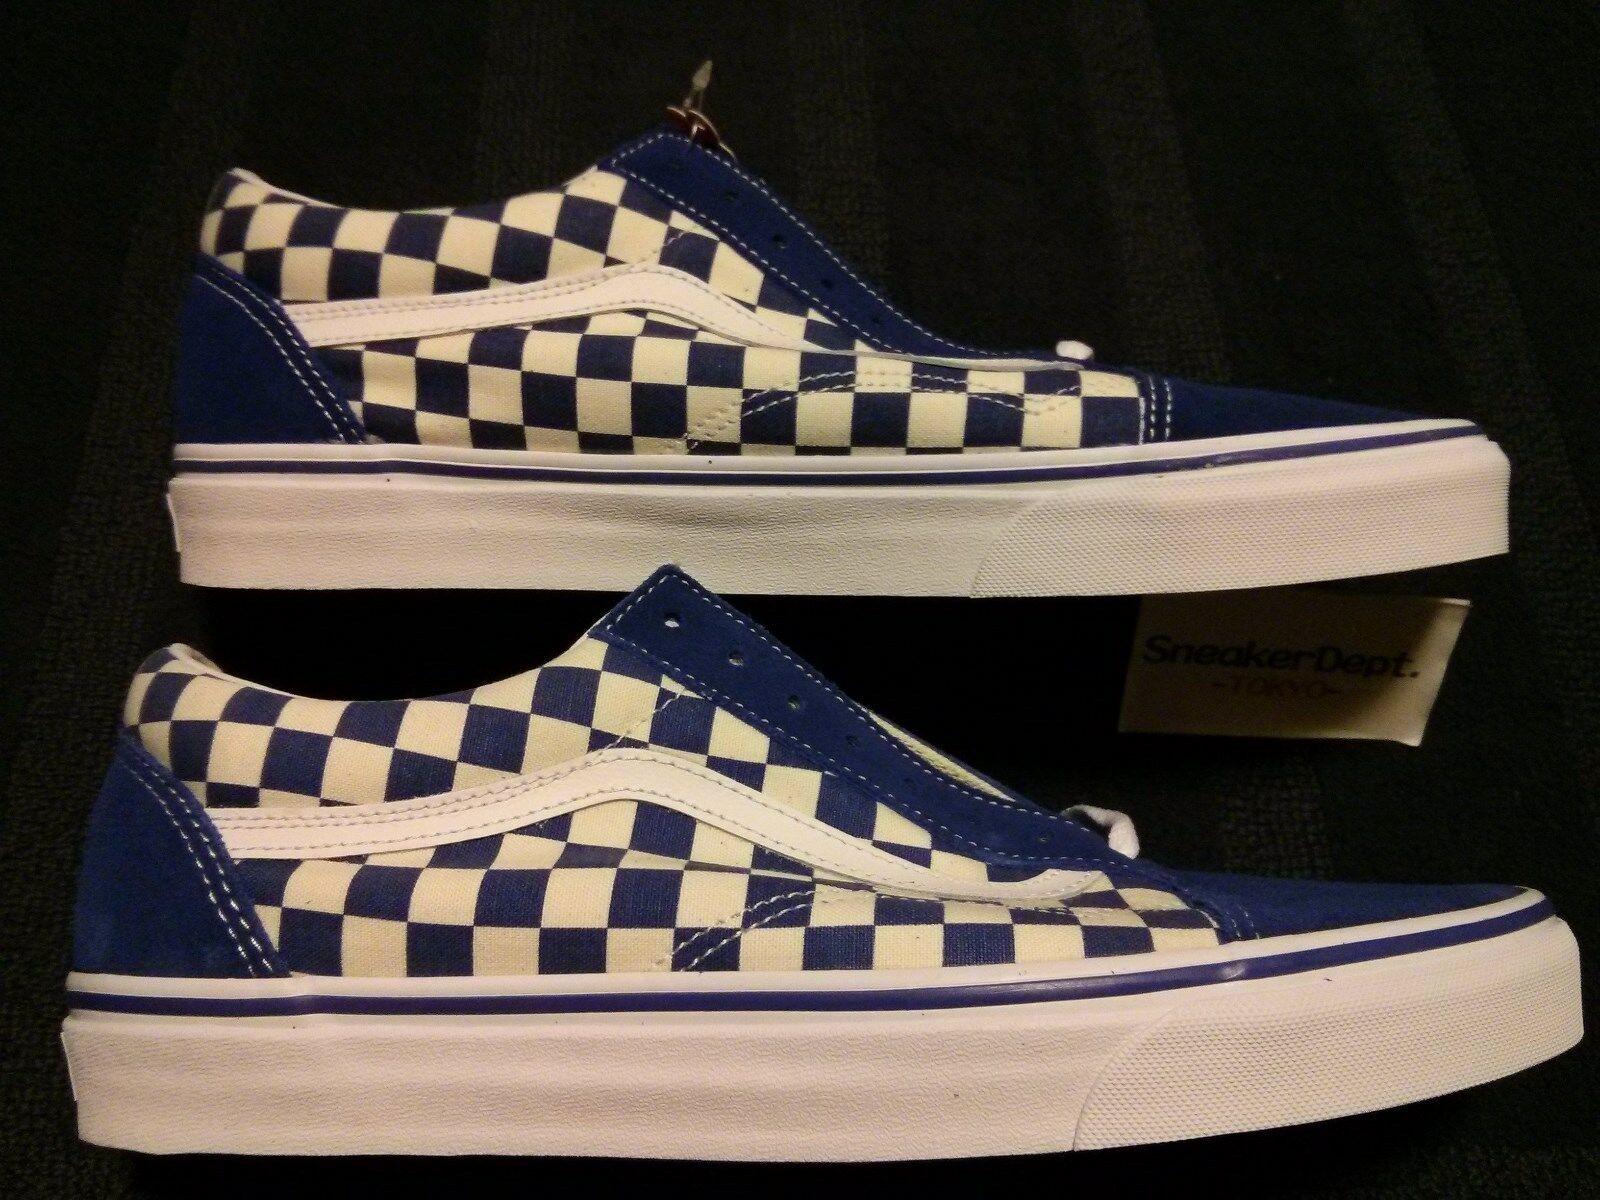 DS 2018 VANS OLD SKOOL PRIMAR BLUE CHECKER SZ12